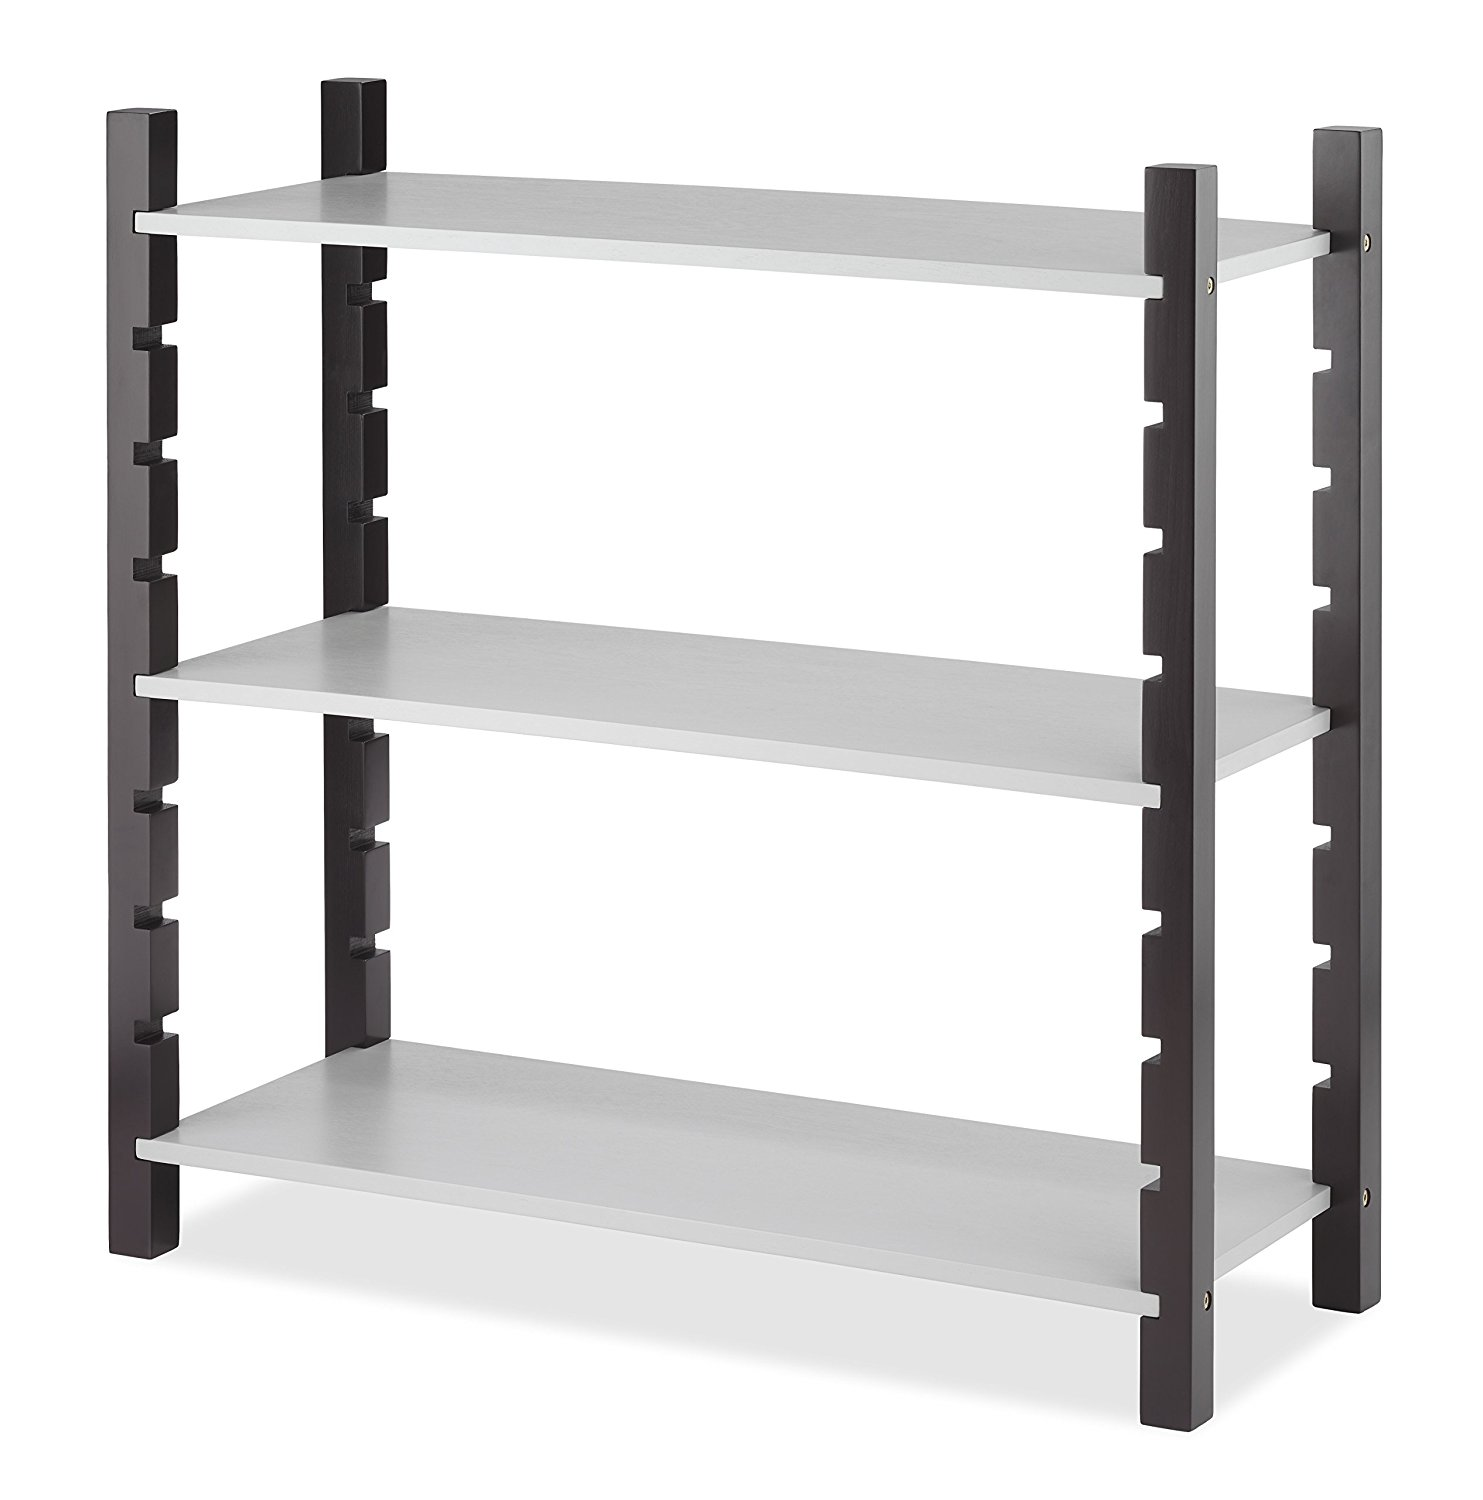 Modular 3 Tier Shelving, Walnut & Gray